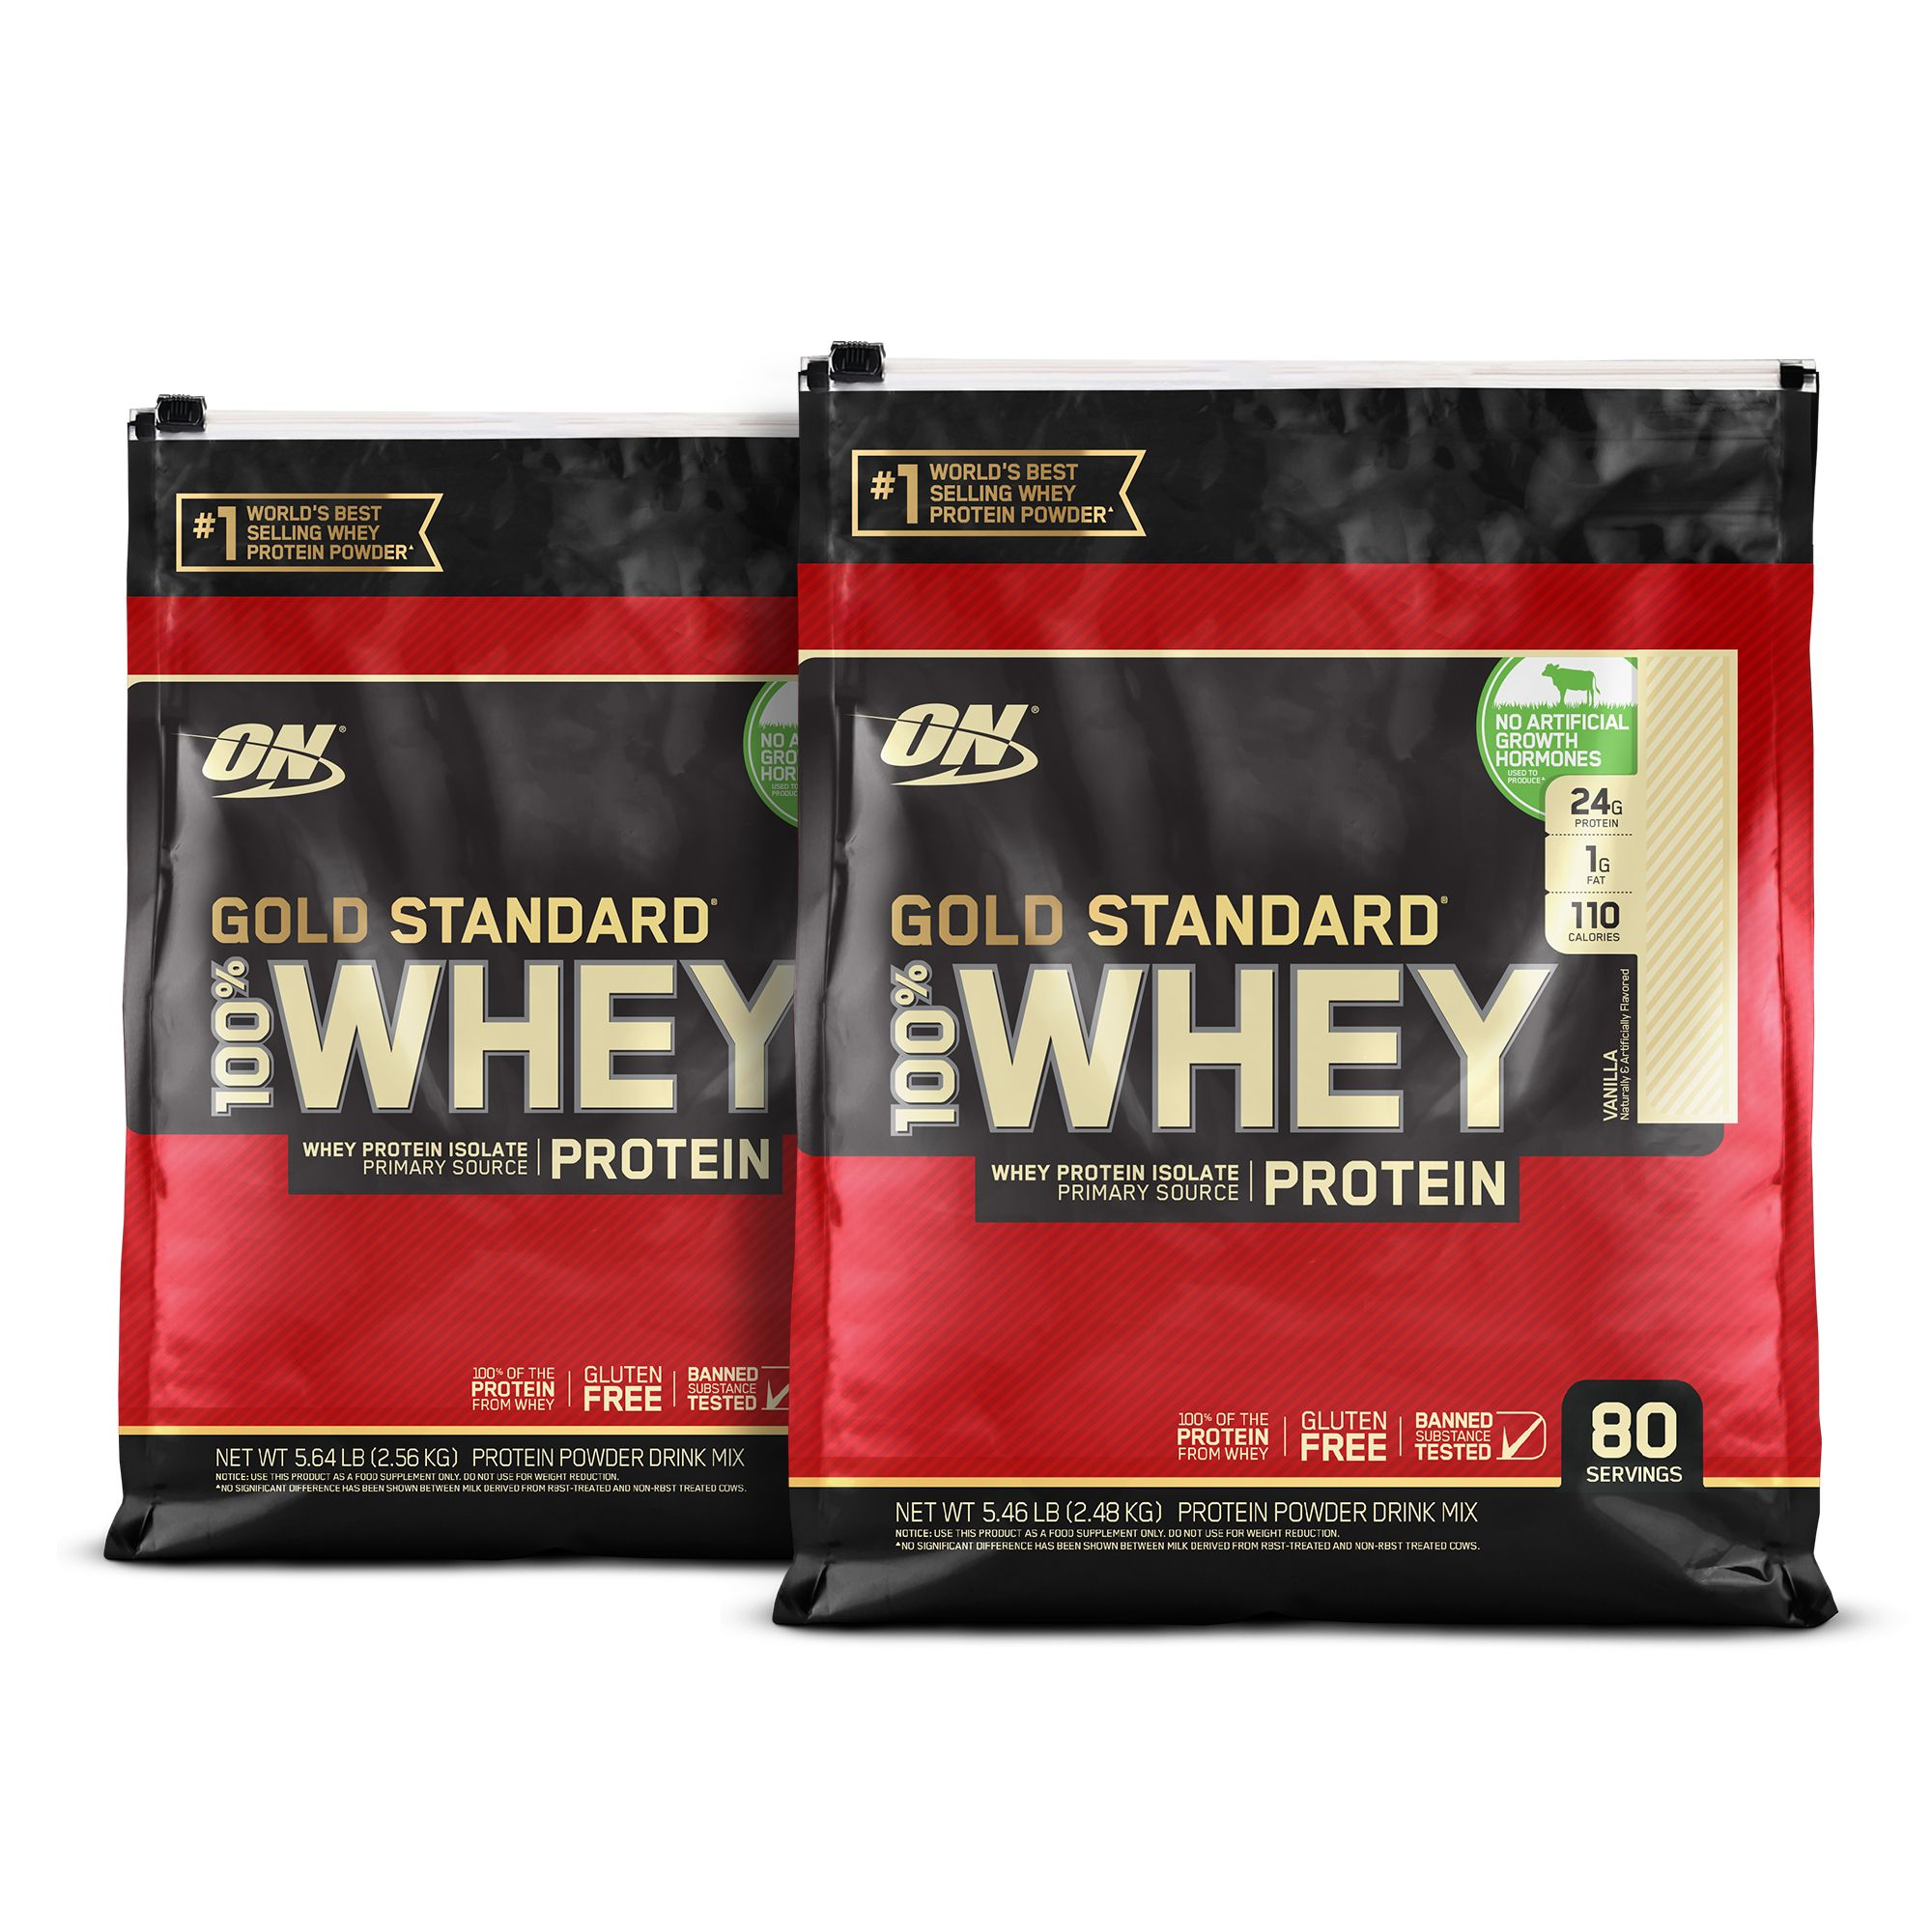 18cc87f57 The True Strength of ON GOLD STANDARD 100% WHEY™ Protein